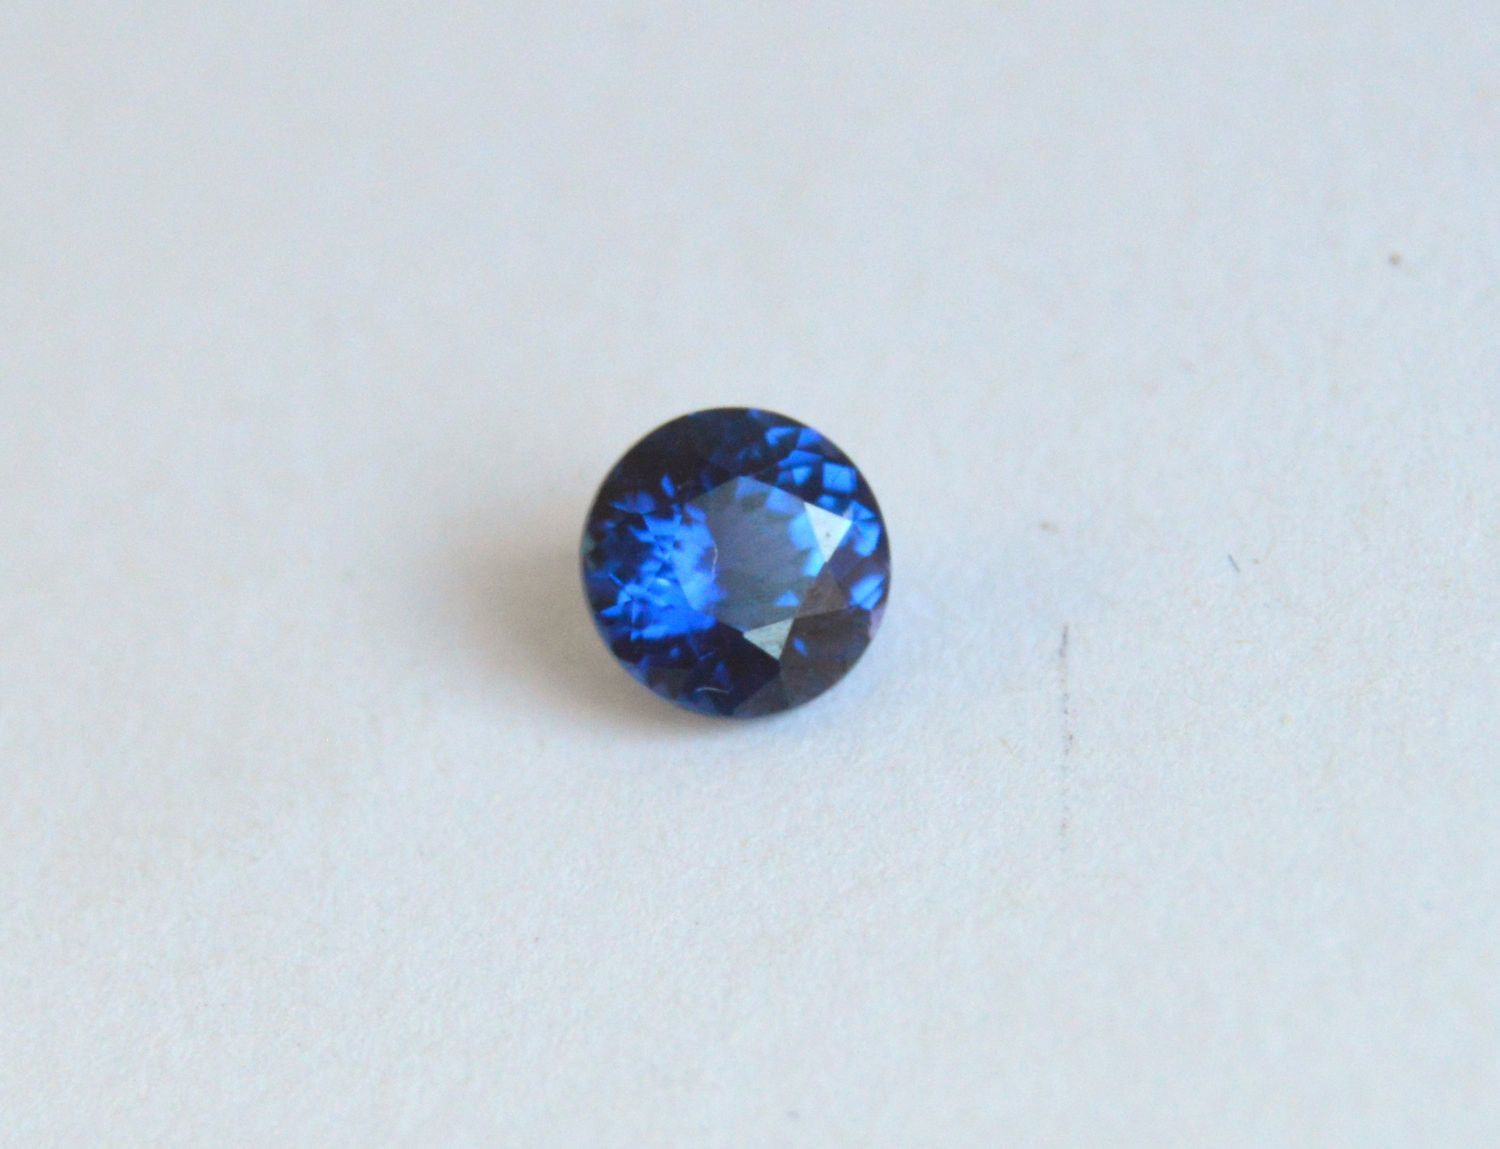 earth carat gemstones sapphire product medium light blue s et cornflower category ceylon treasury